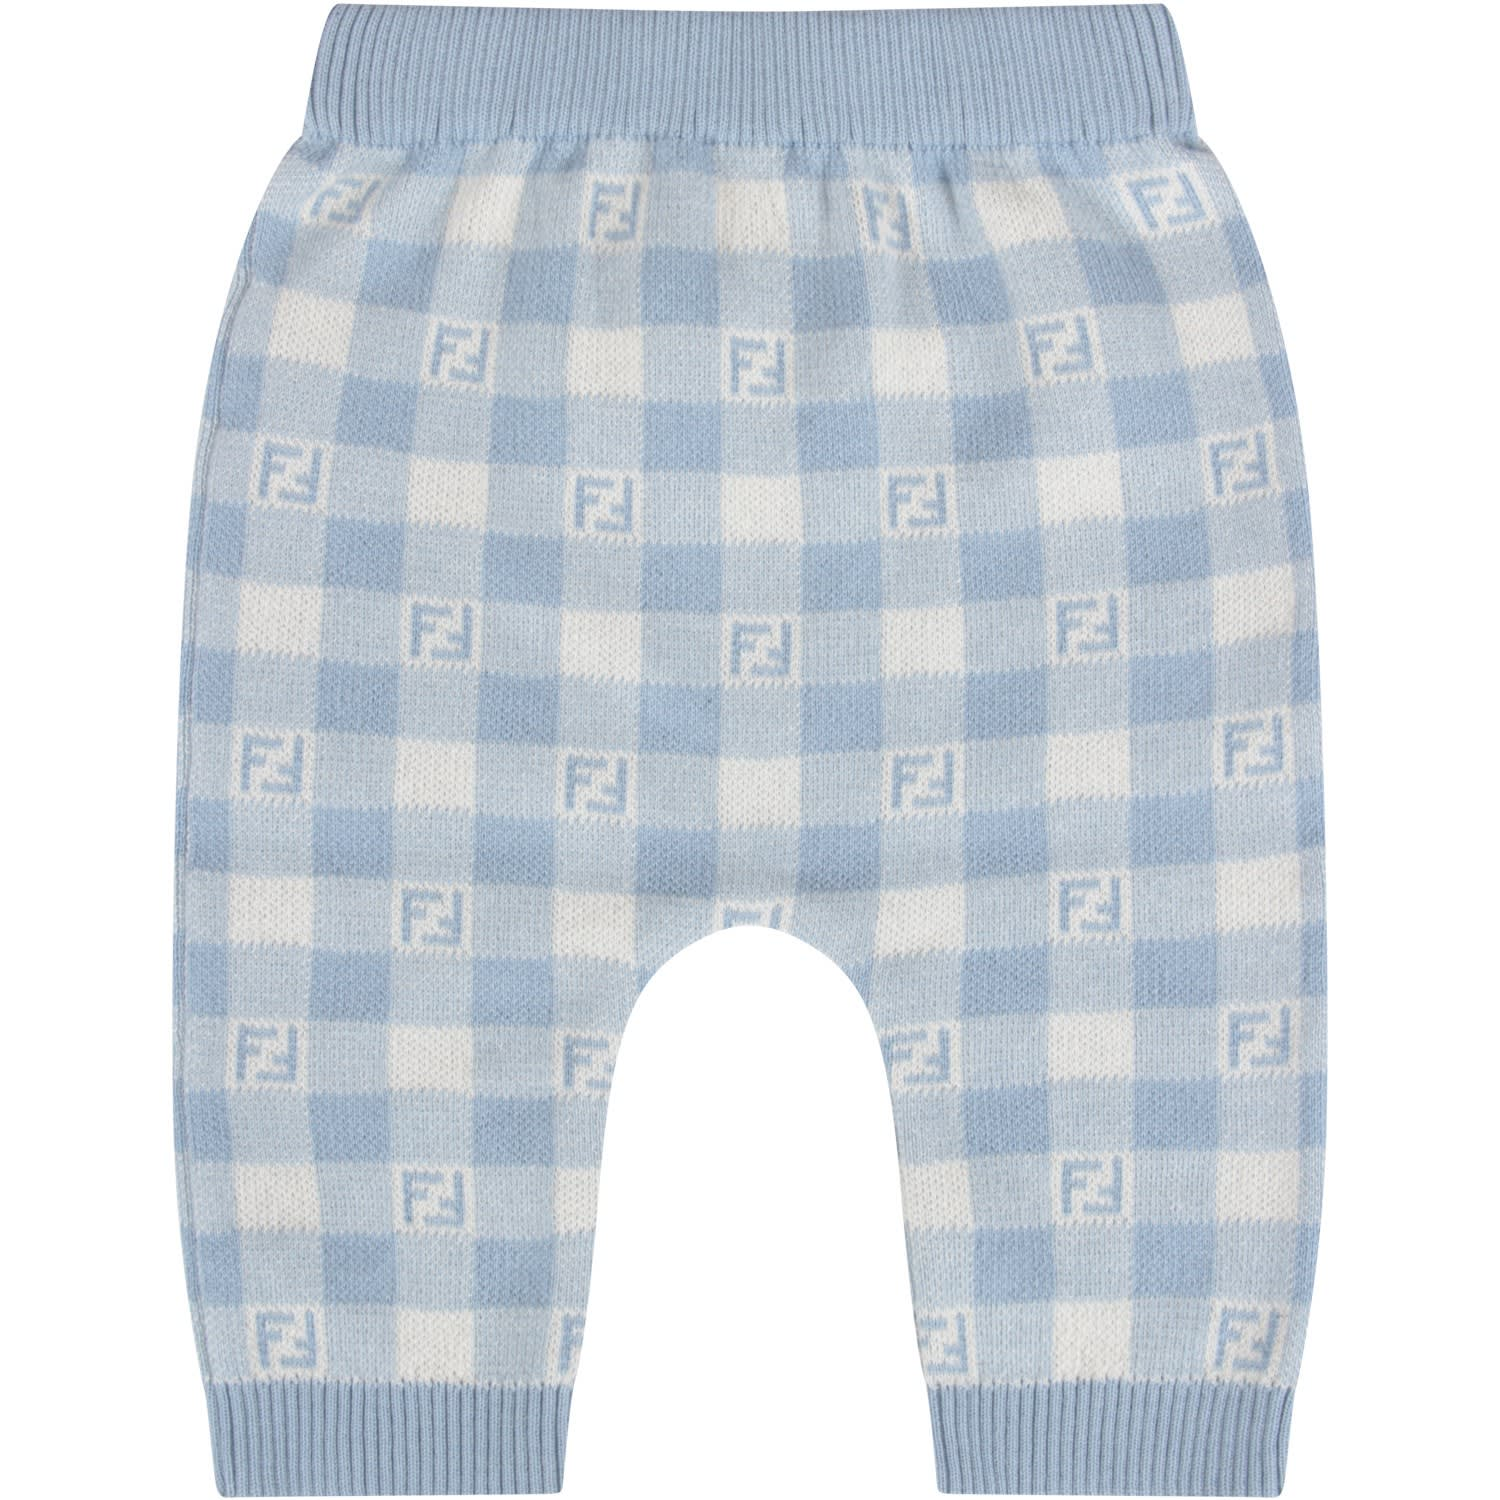 Fendi LIGHT BLUE AND IVORY BABYBOY PANT WITH DOUBLE FF